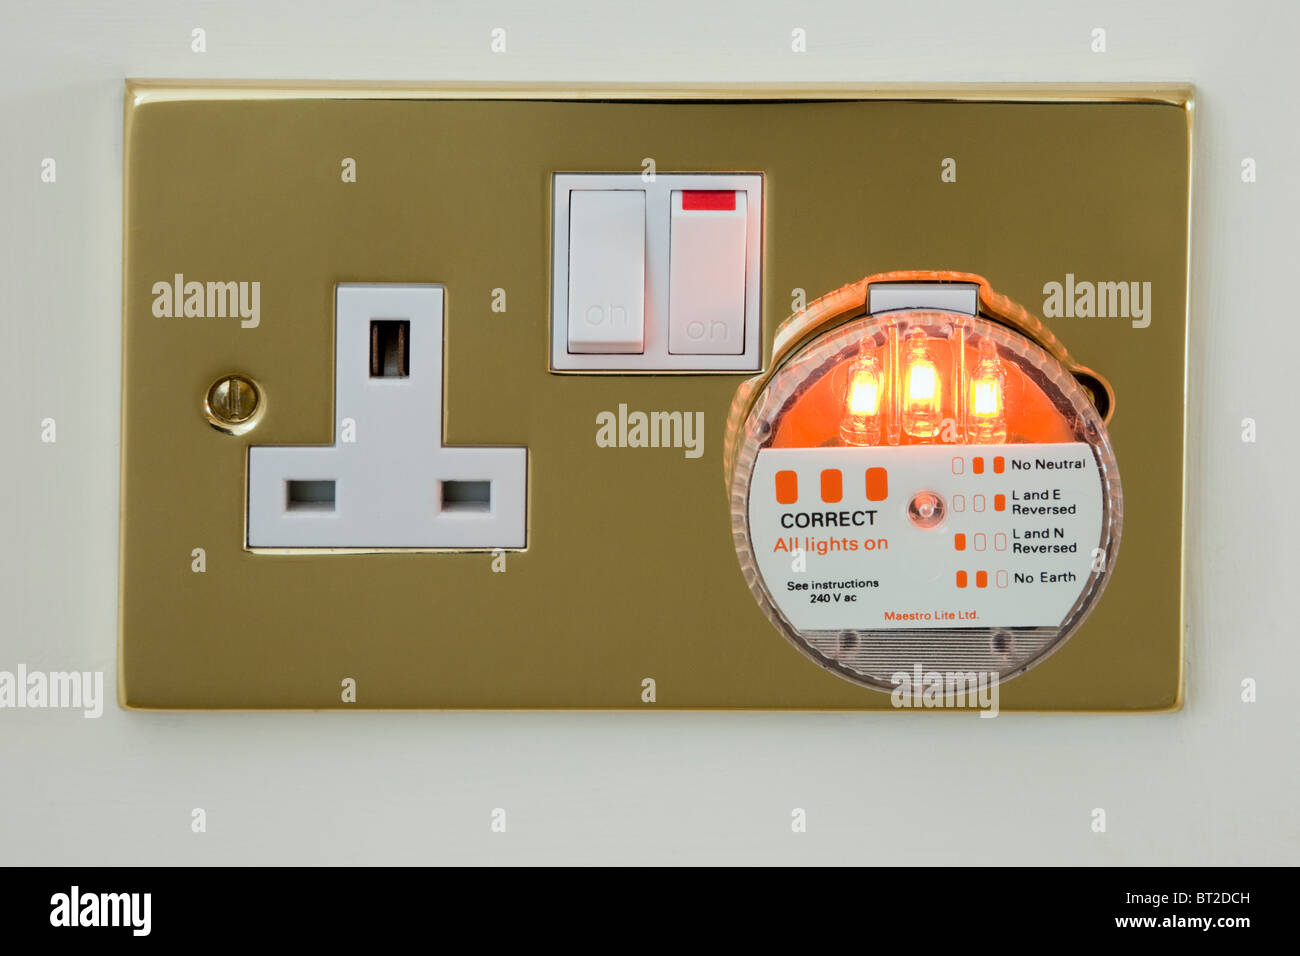 Wiring Wall Socket Uk Wire Data Schema Bt Diagram 3 Pin Electric Tester Plug Checking Mains Electricity Rh Alamy Com Telephone Rj45